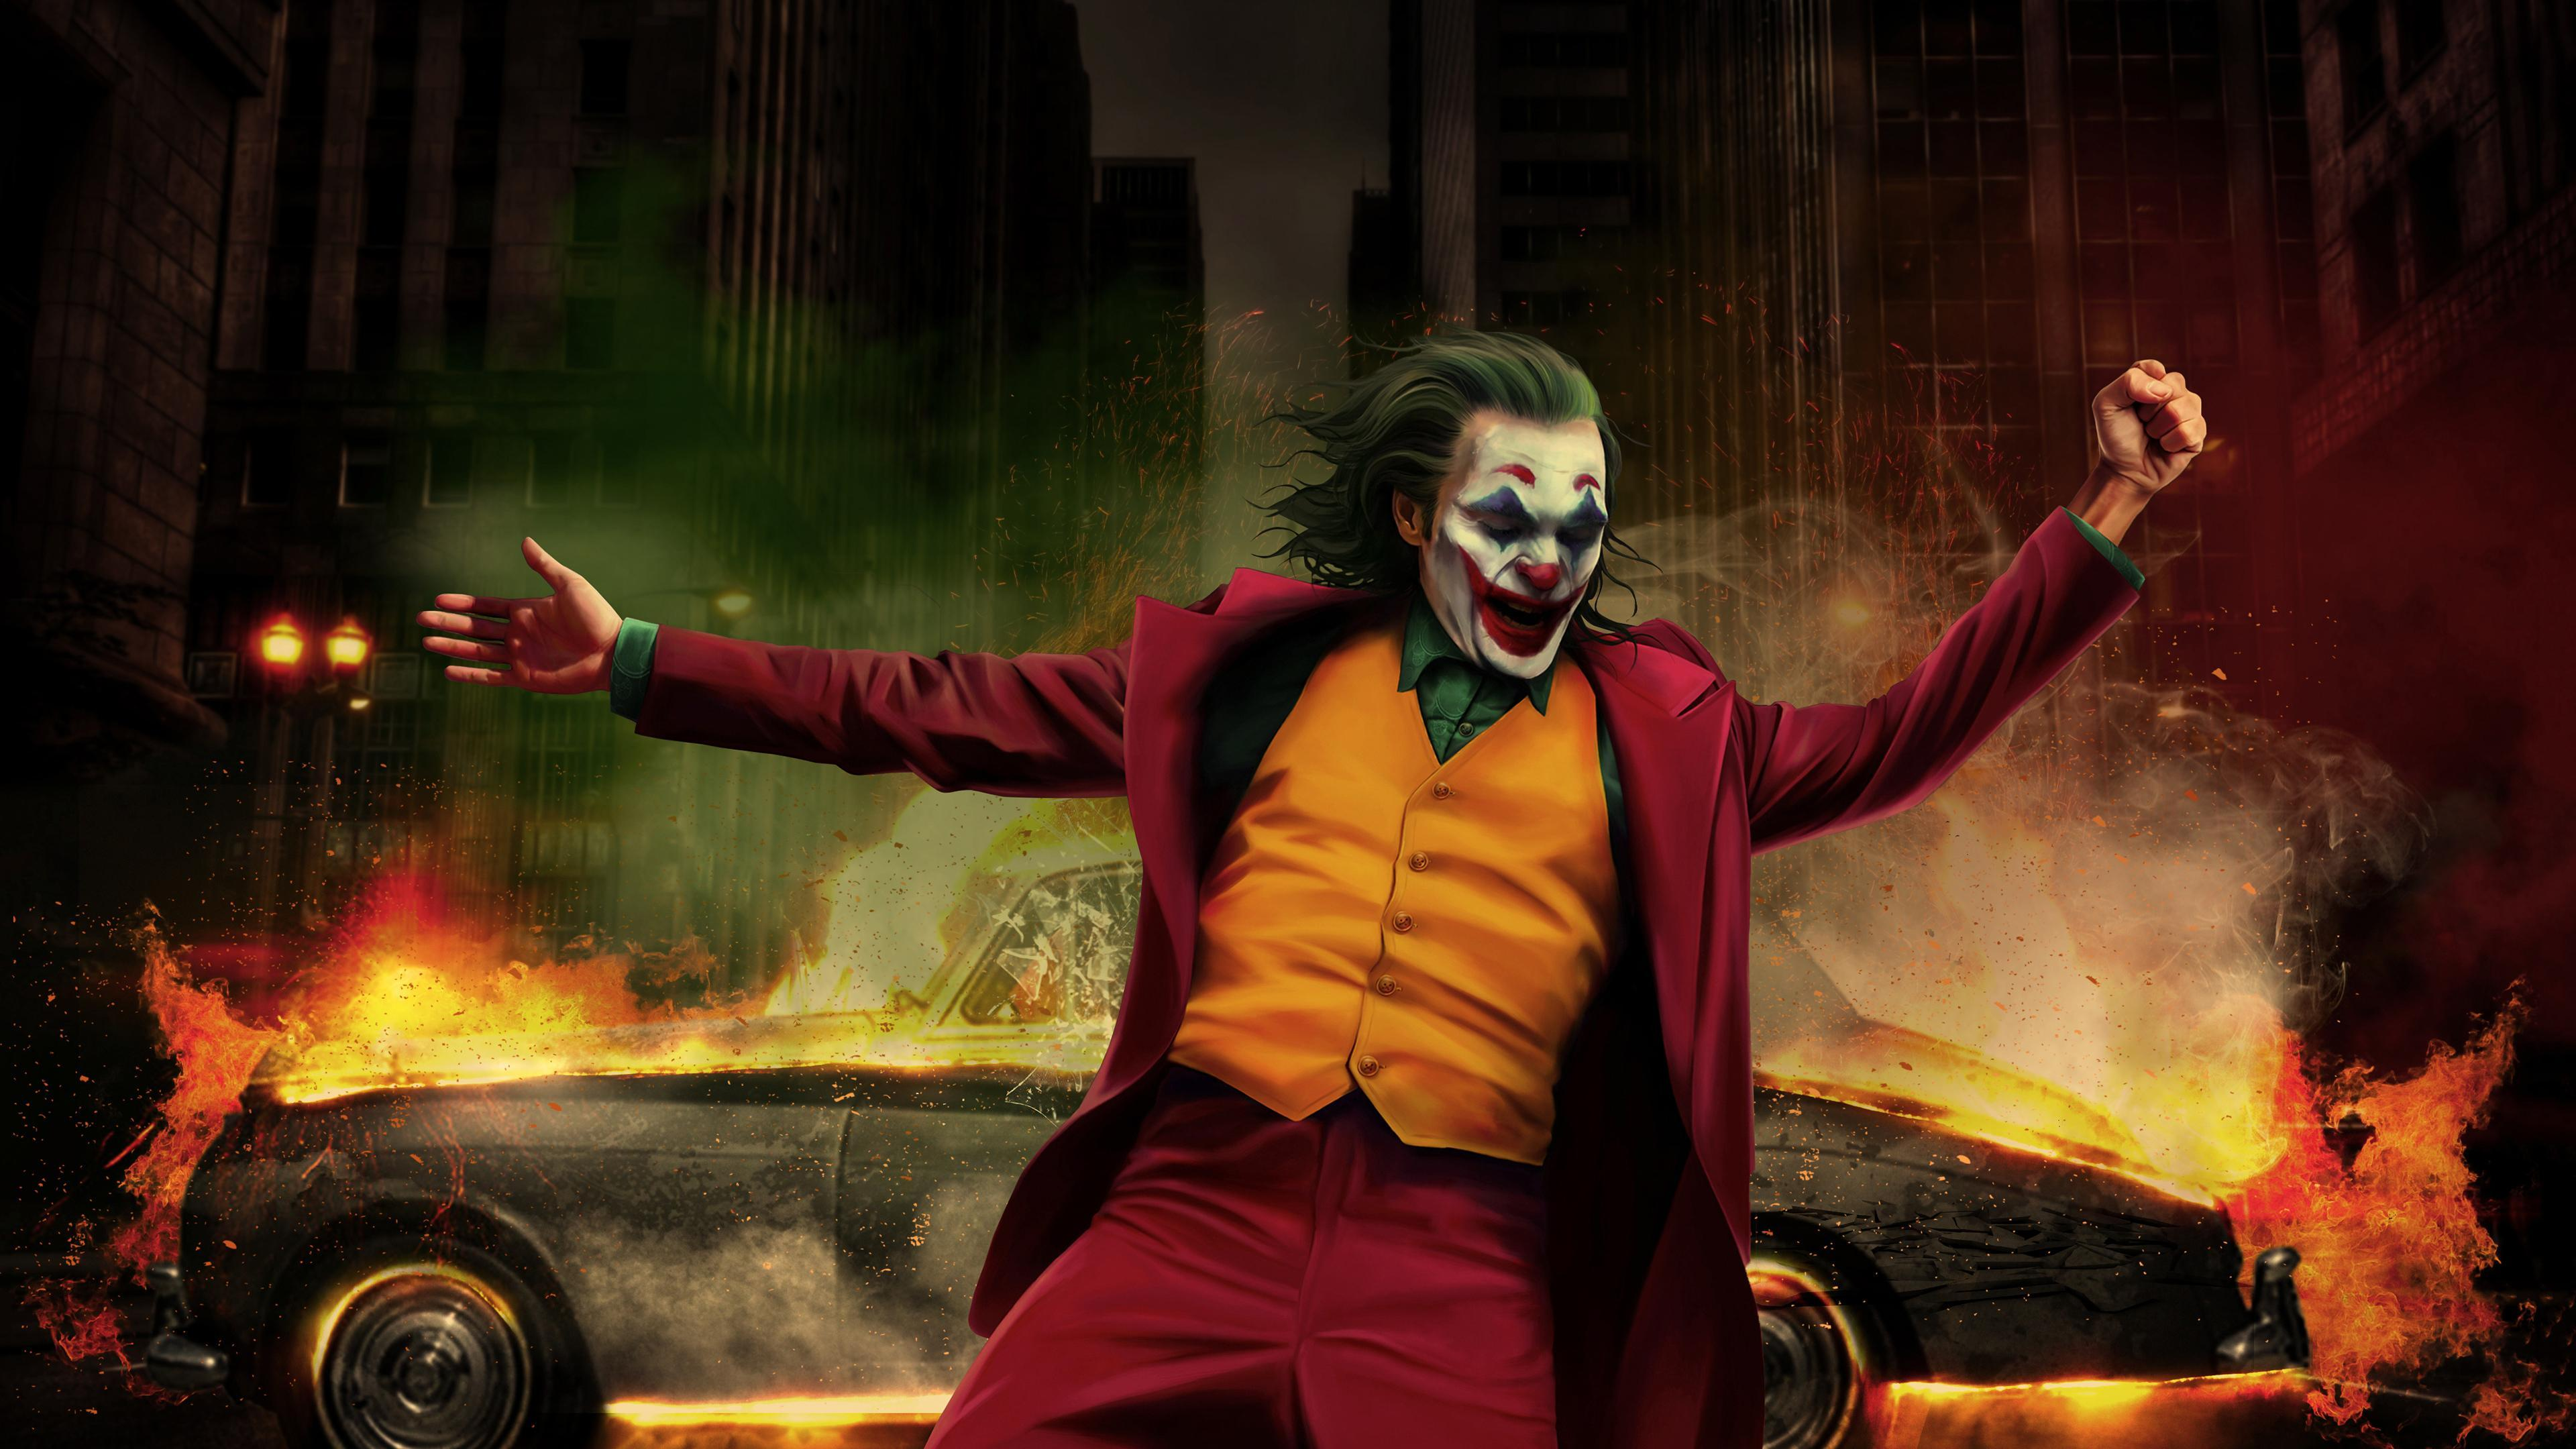 Wallpapers 4k Joker Happy Dancing 4k